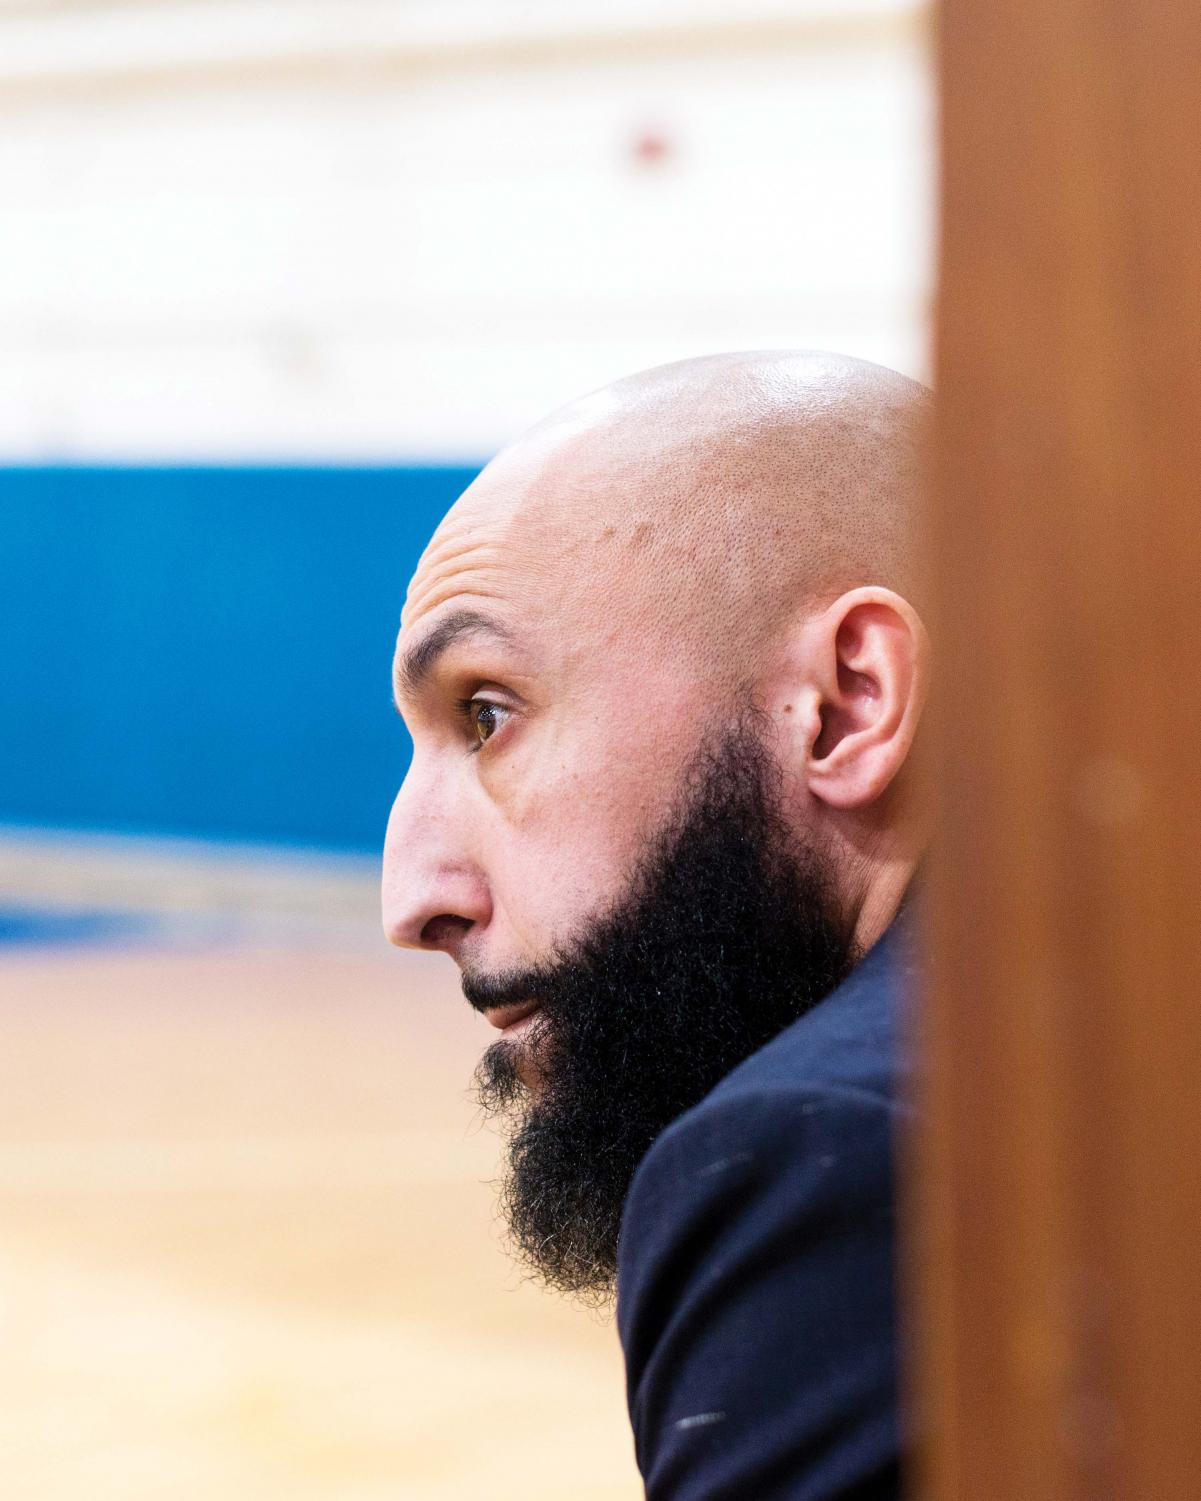 Coach Talhaoui has seen his most successful season yet, boasting a 14-2 record this year as of Tuesday.